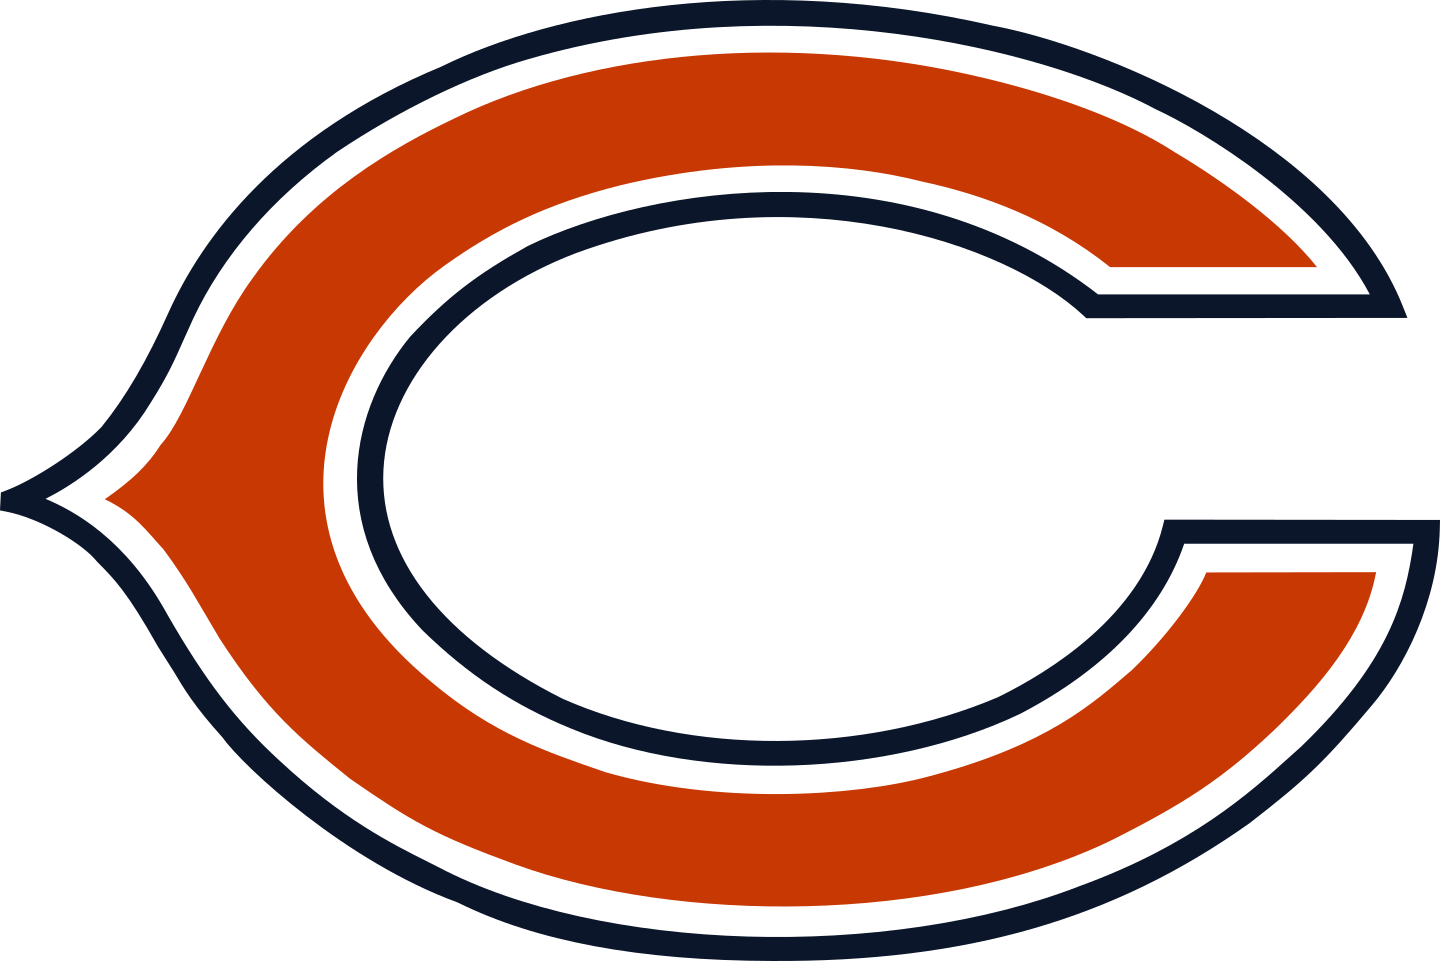 chicago bears logo 3 - Chicago Bears Logo